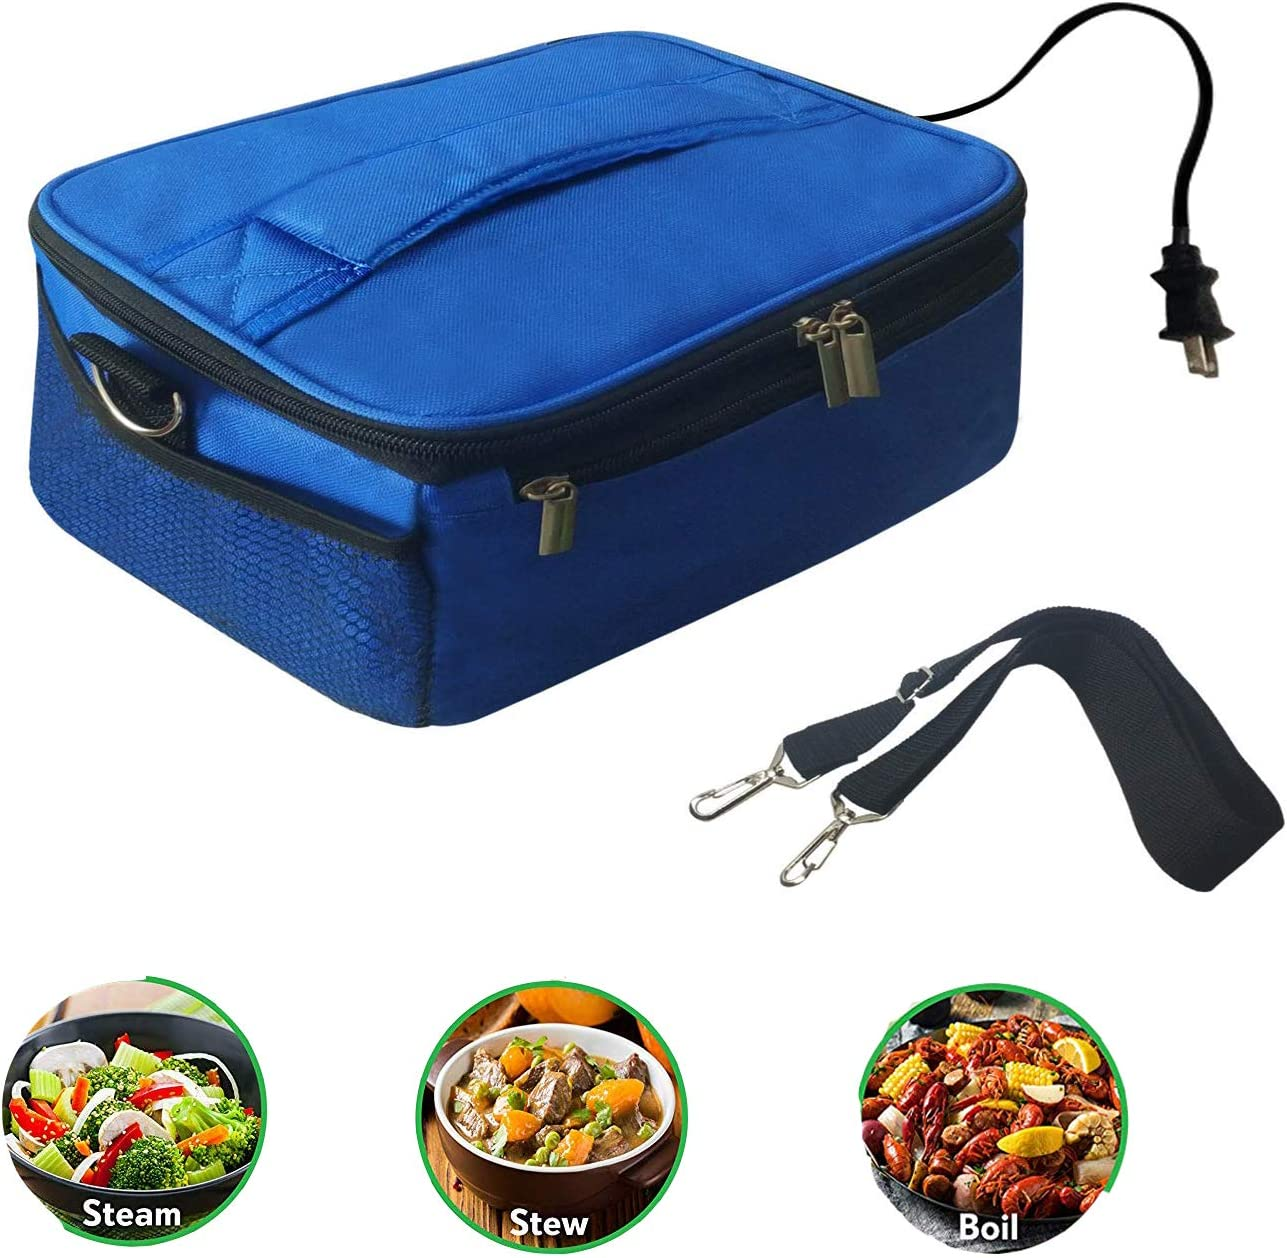 Portable Oven Personal Food Warmer for Prepared Meals Lunch Warmer Reheating at work For Office Working, Truckers,Outdoors Travel, Camping 110V blue